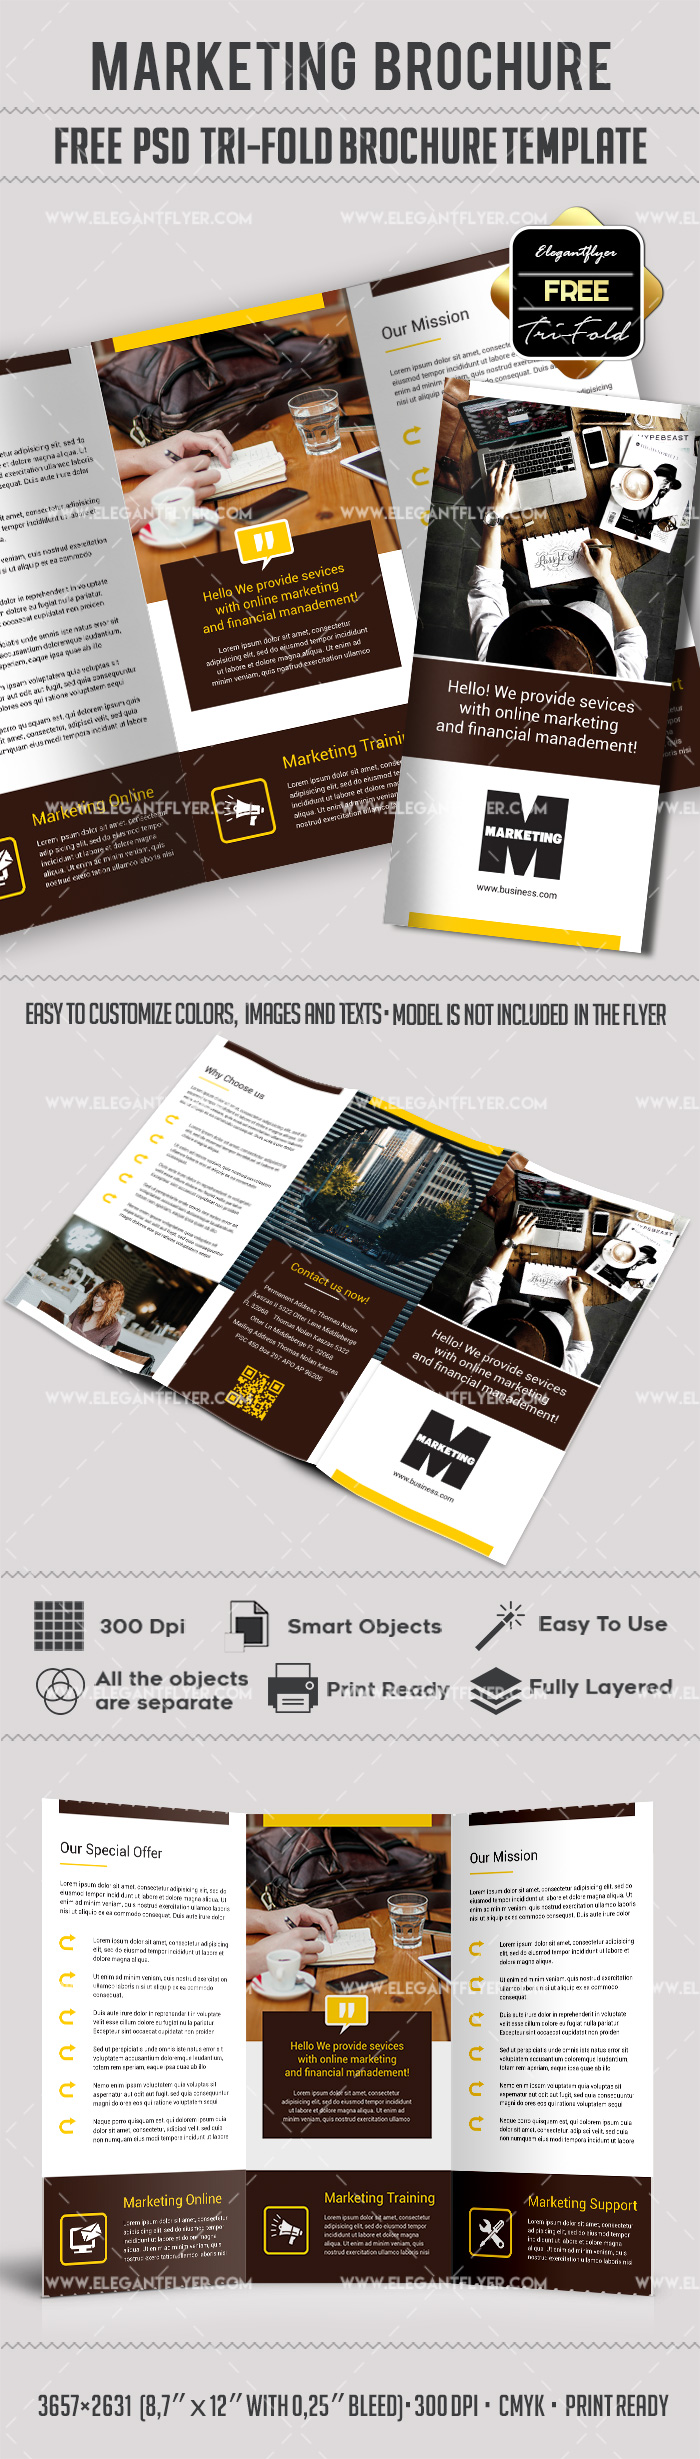 Marketing free tri fold psd brochure template by for Free brochure psd templates